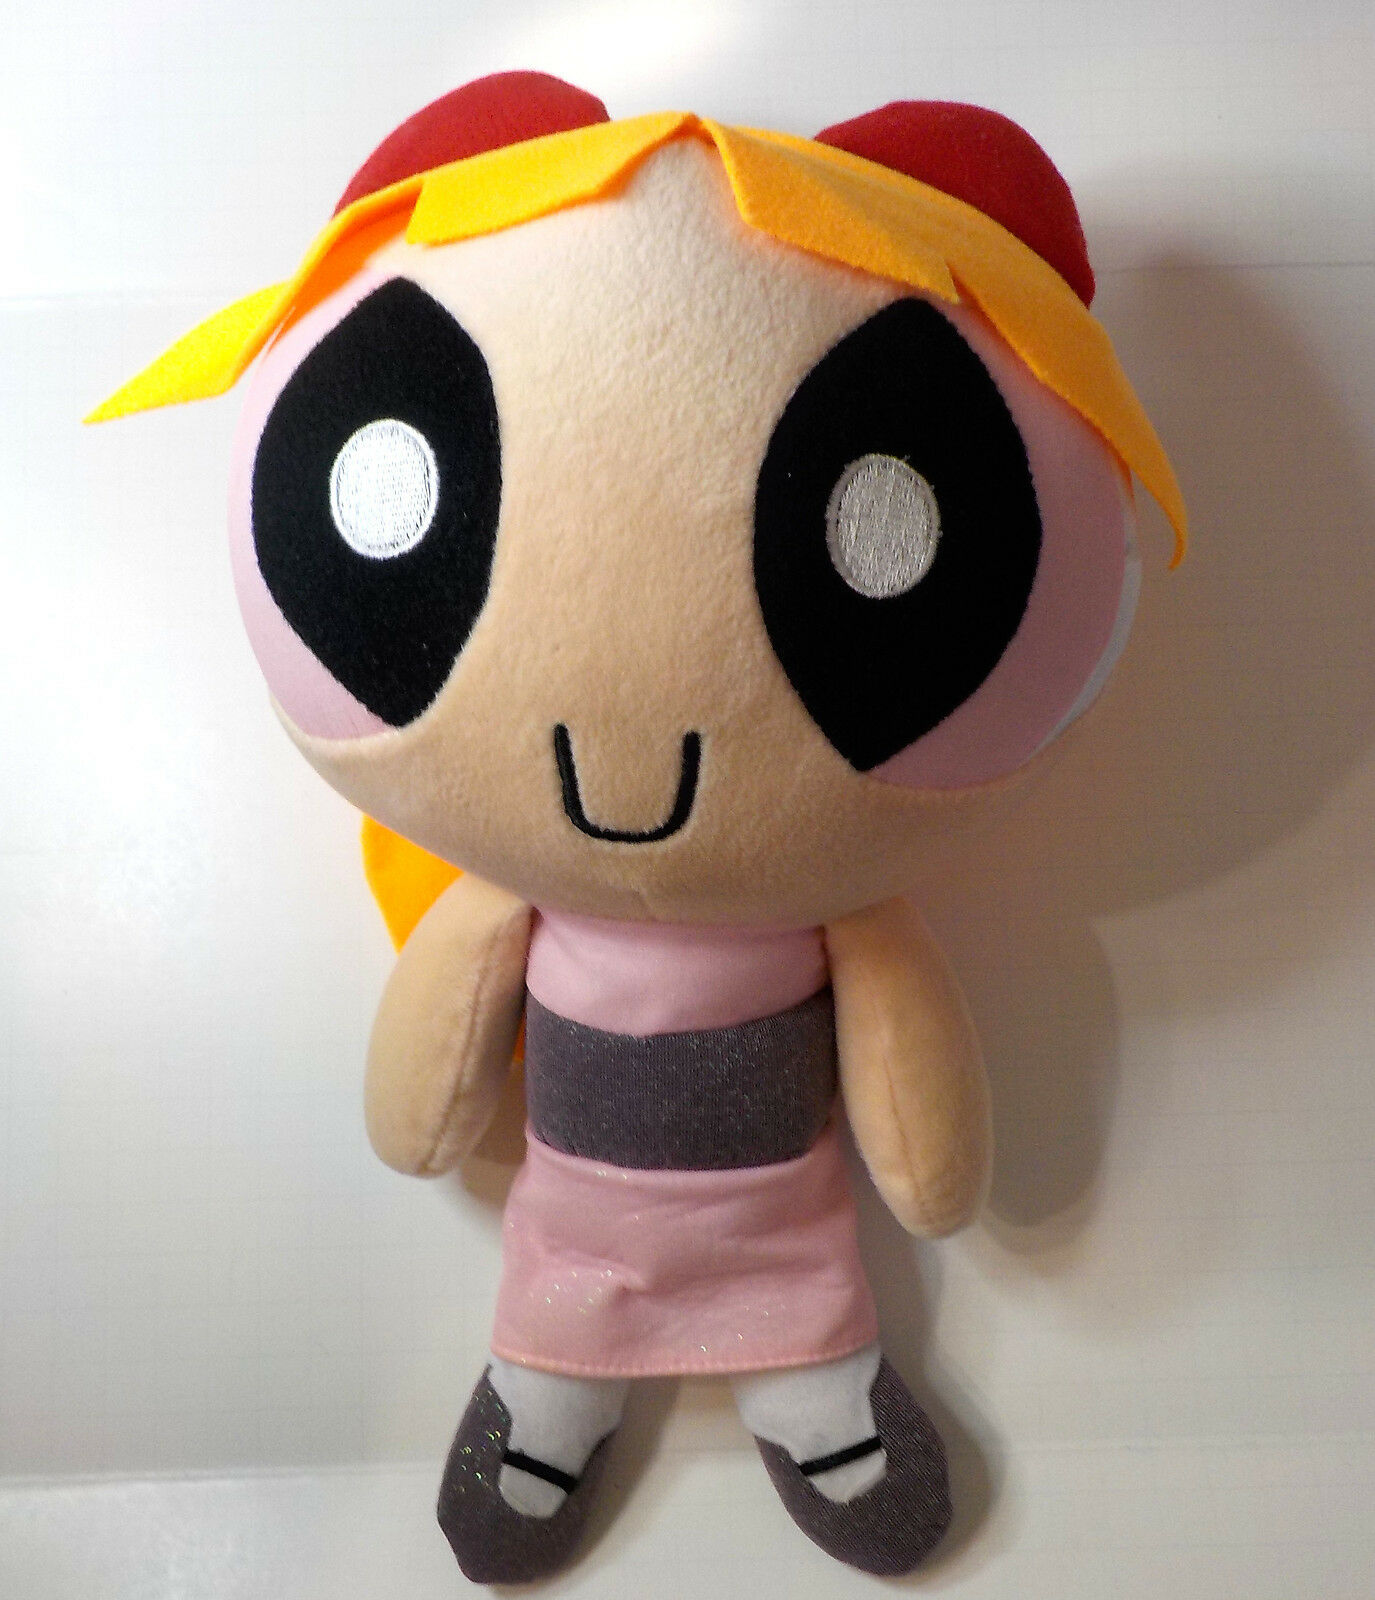 Powerpuff Girls BLOSSOM plush doll w  beans 15    H 4dff58